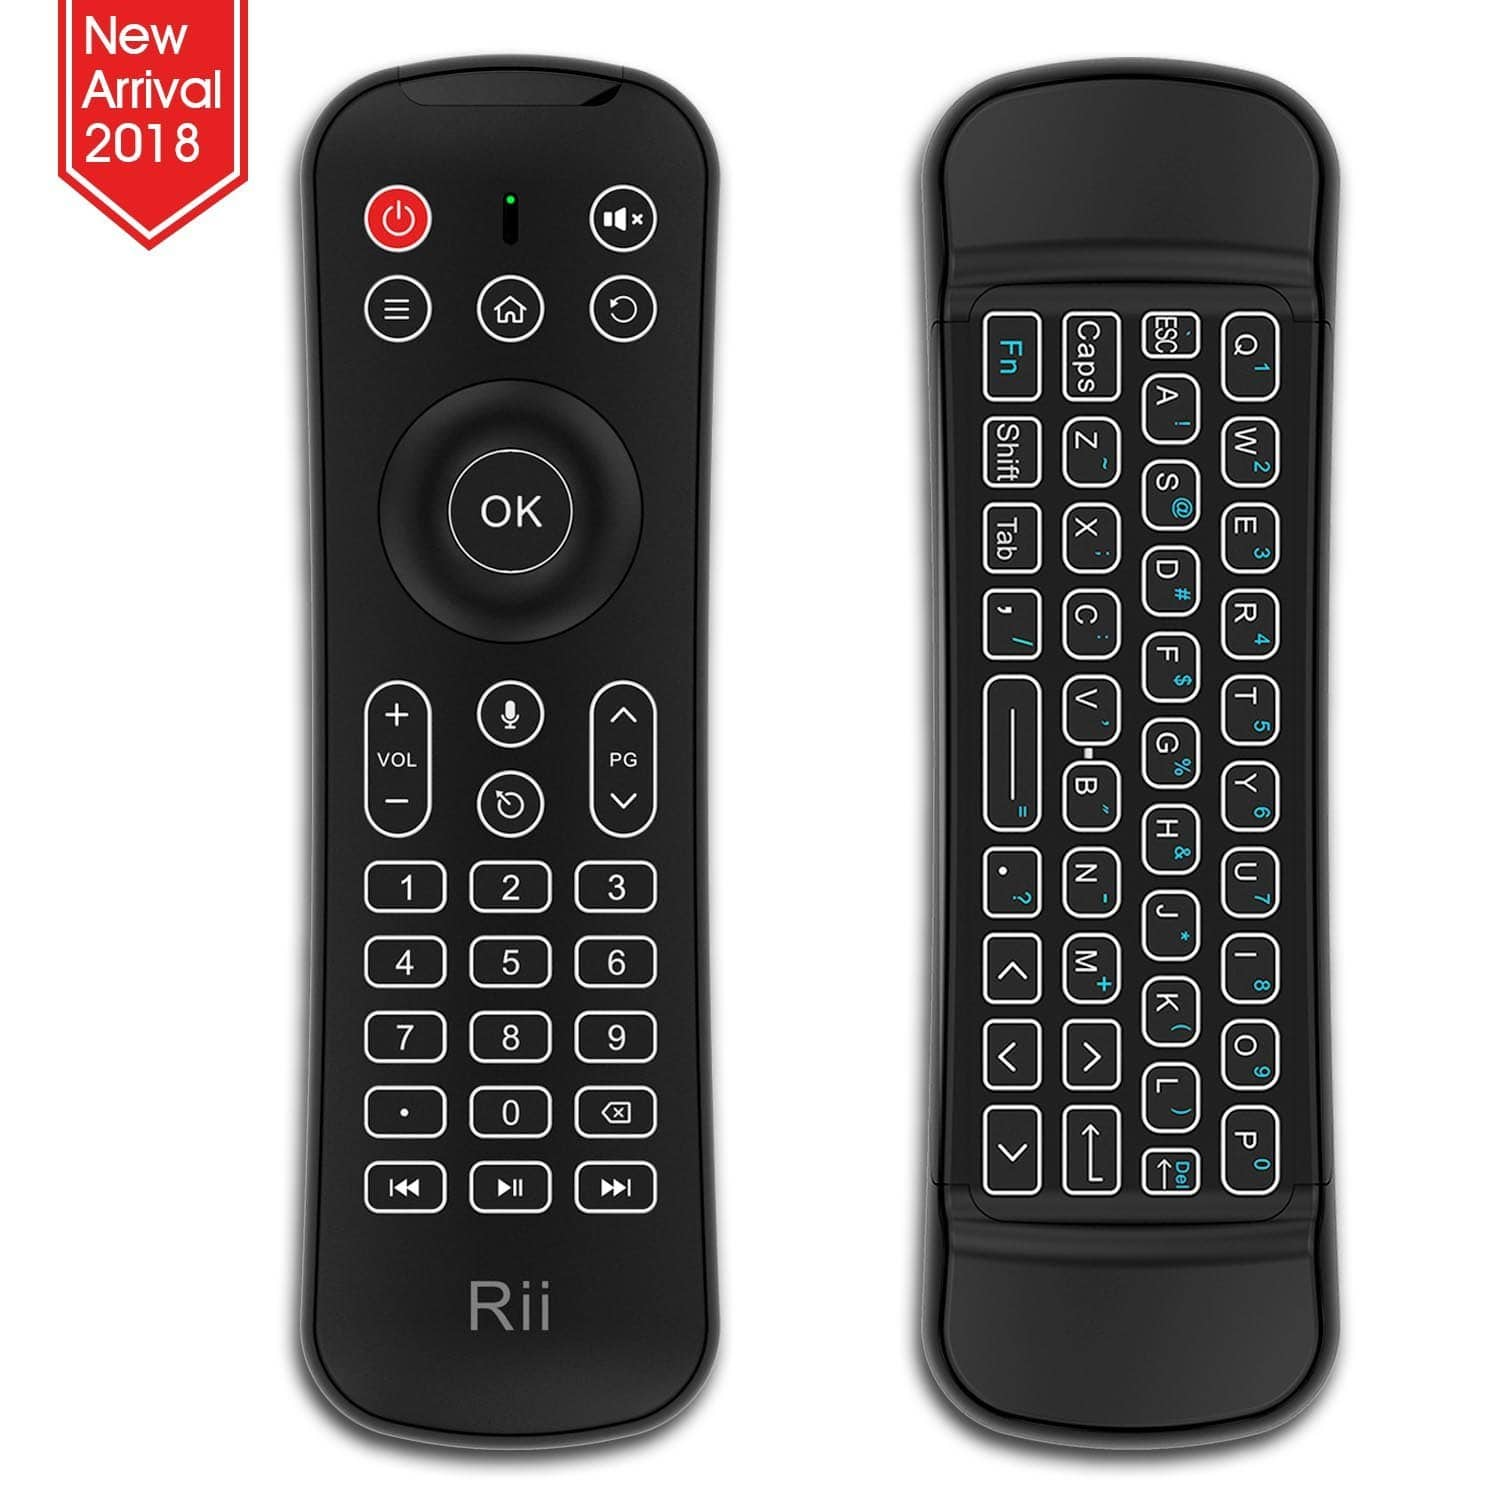 Rii Backlit Fly Mouse 2.4G MX6 Multifunctional Wireless Mini Keyboard and Remote Control With Microphone $15.39